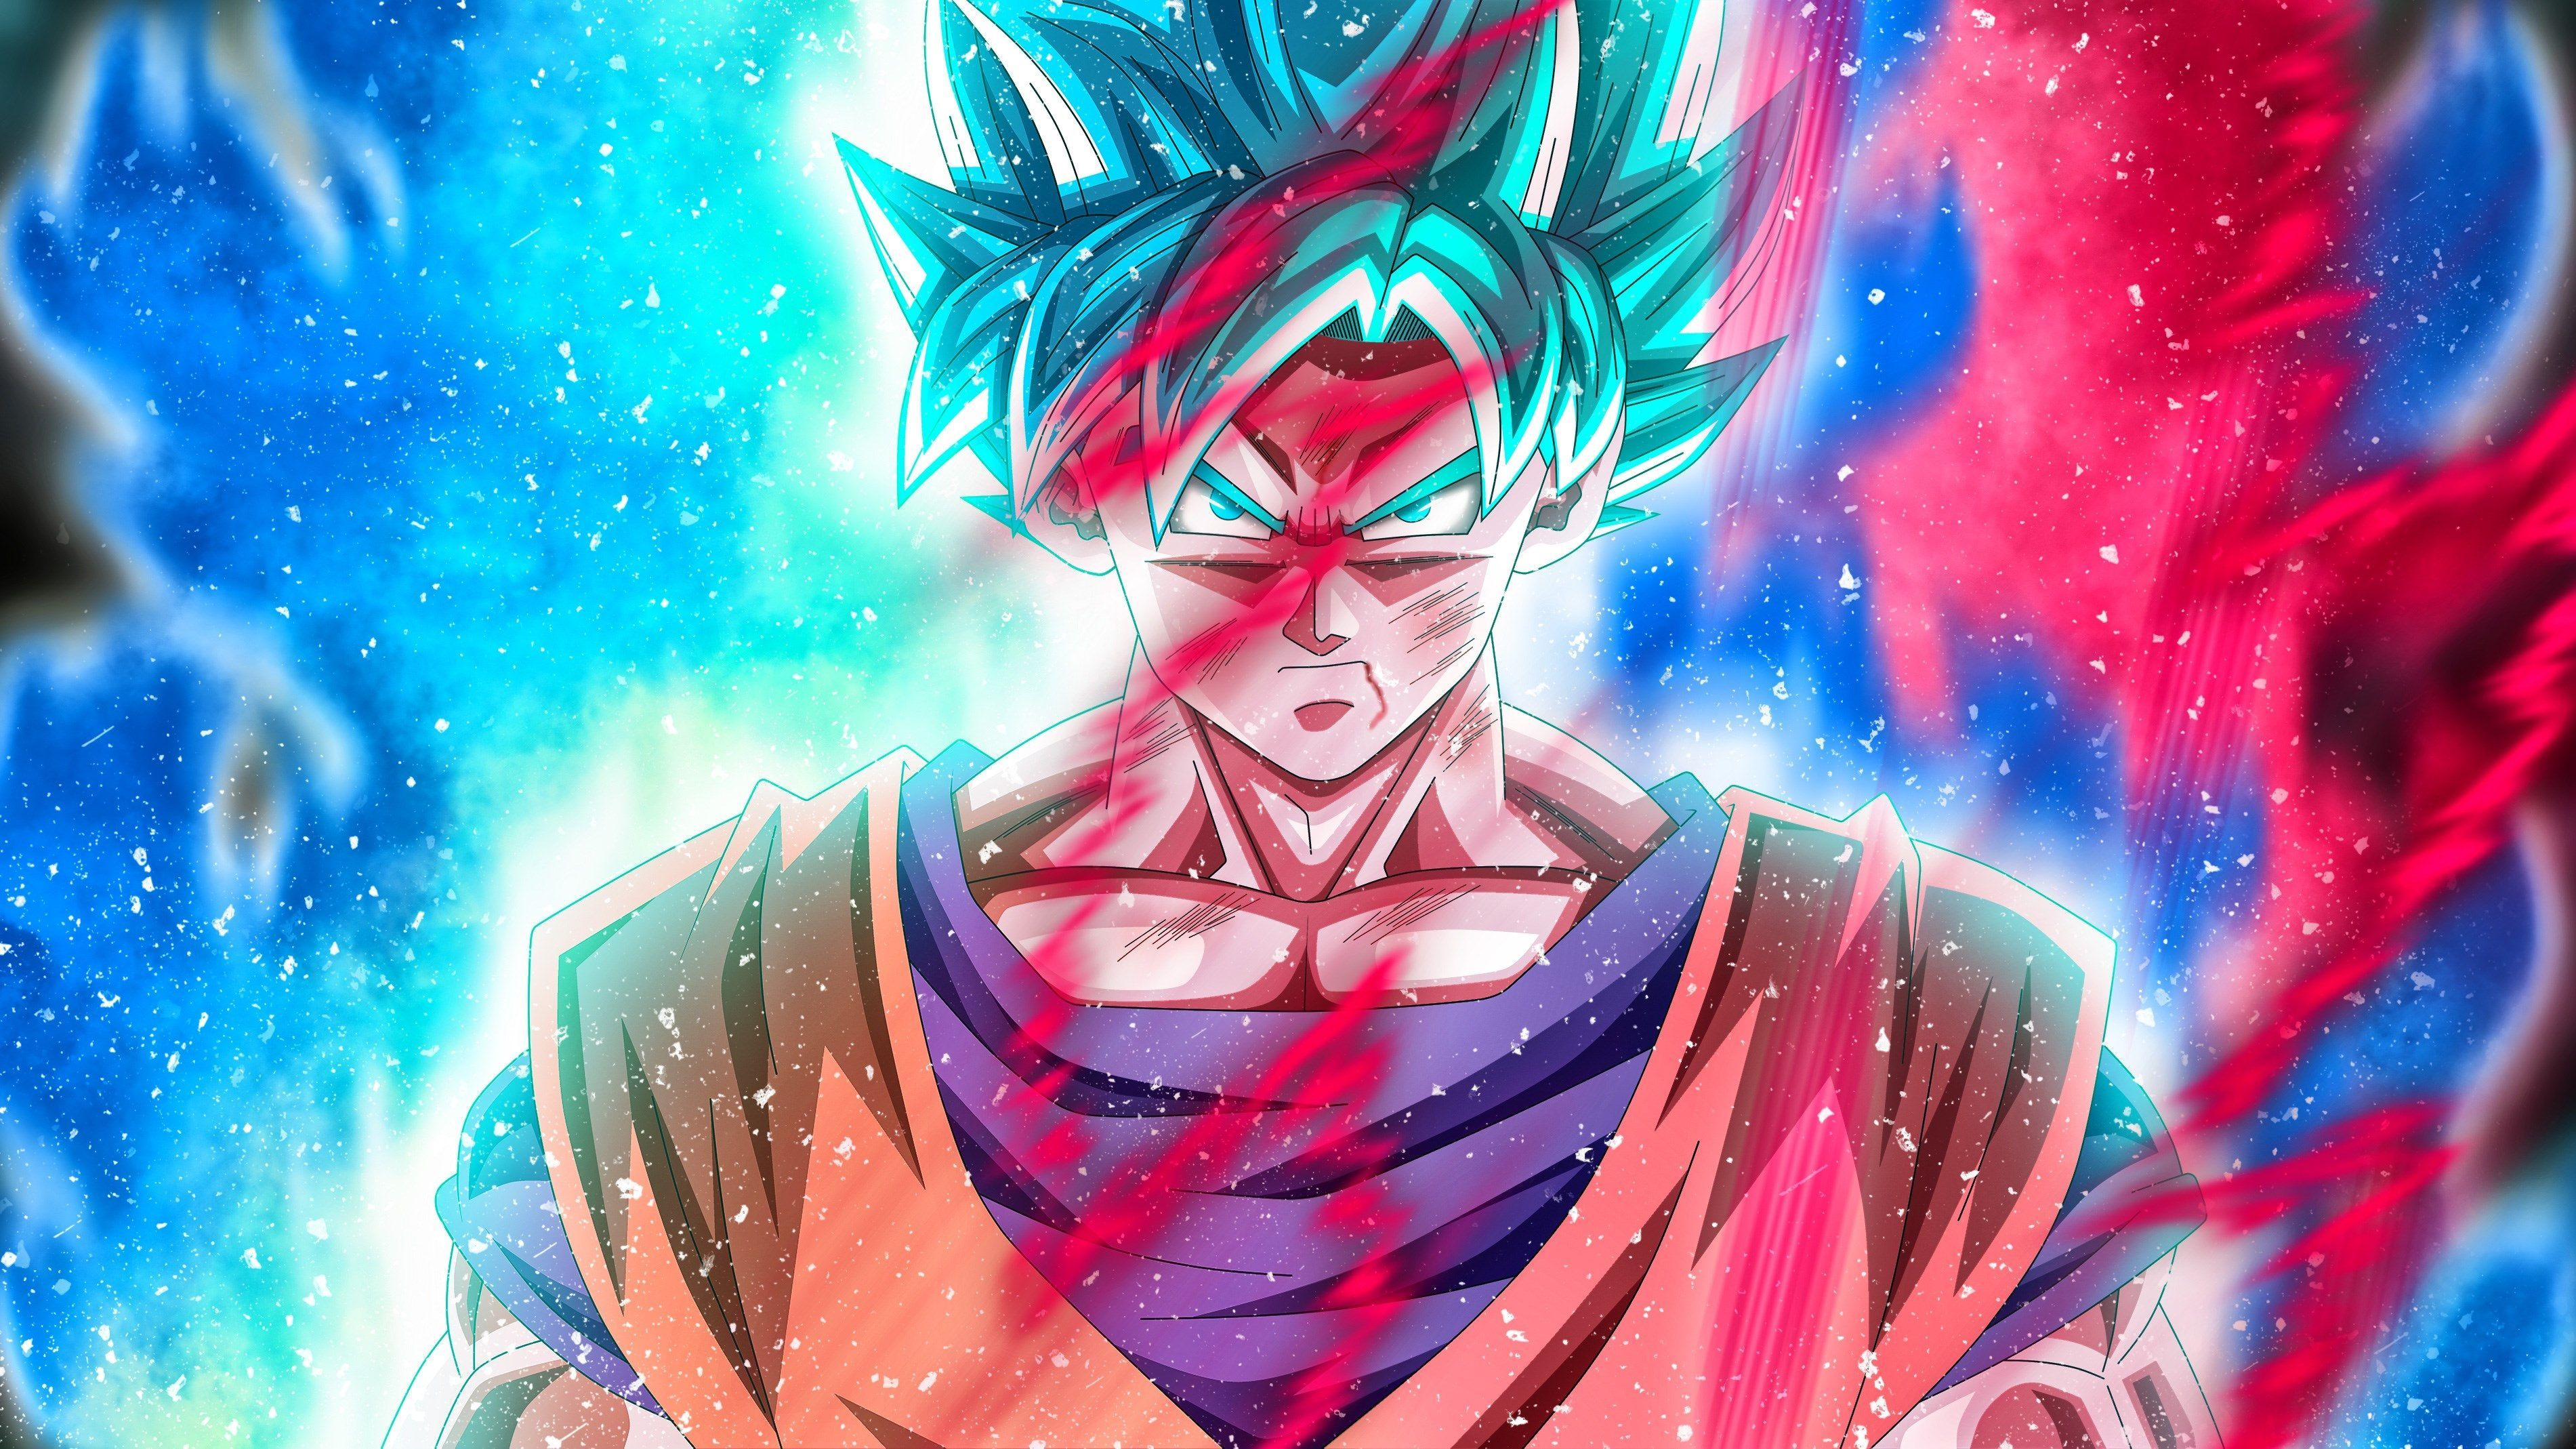 Dragon Ball 4k Ultra Hd Wallpapers Top Free Dragon Ball 4k